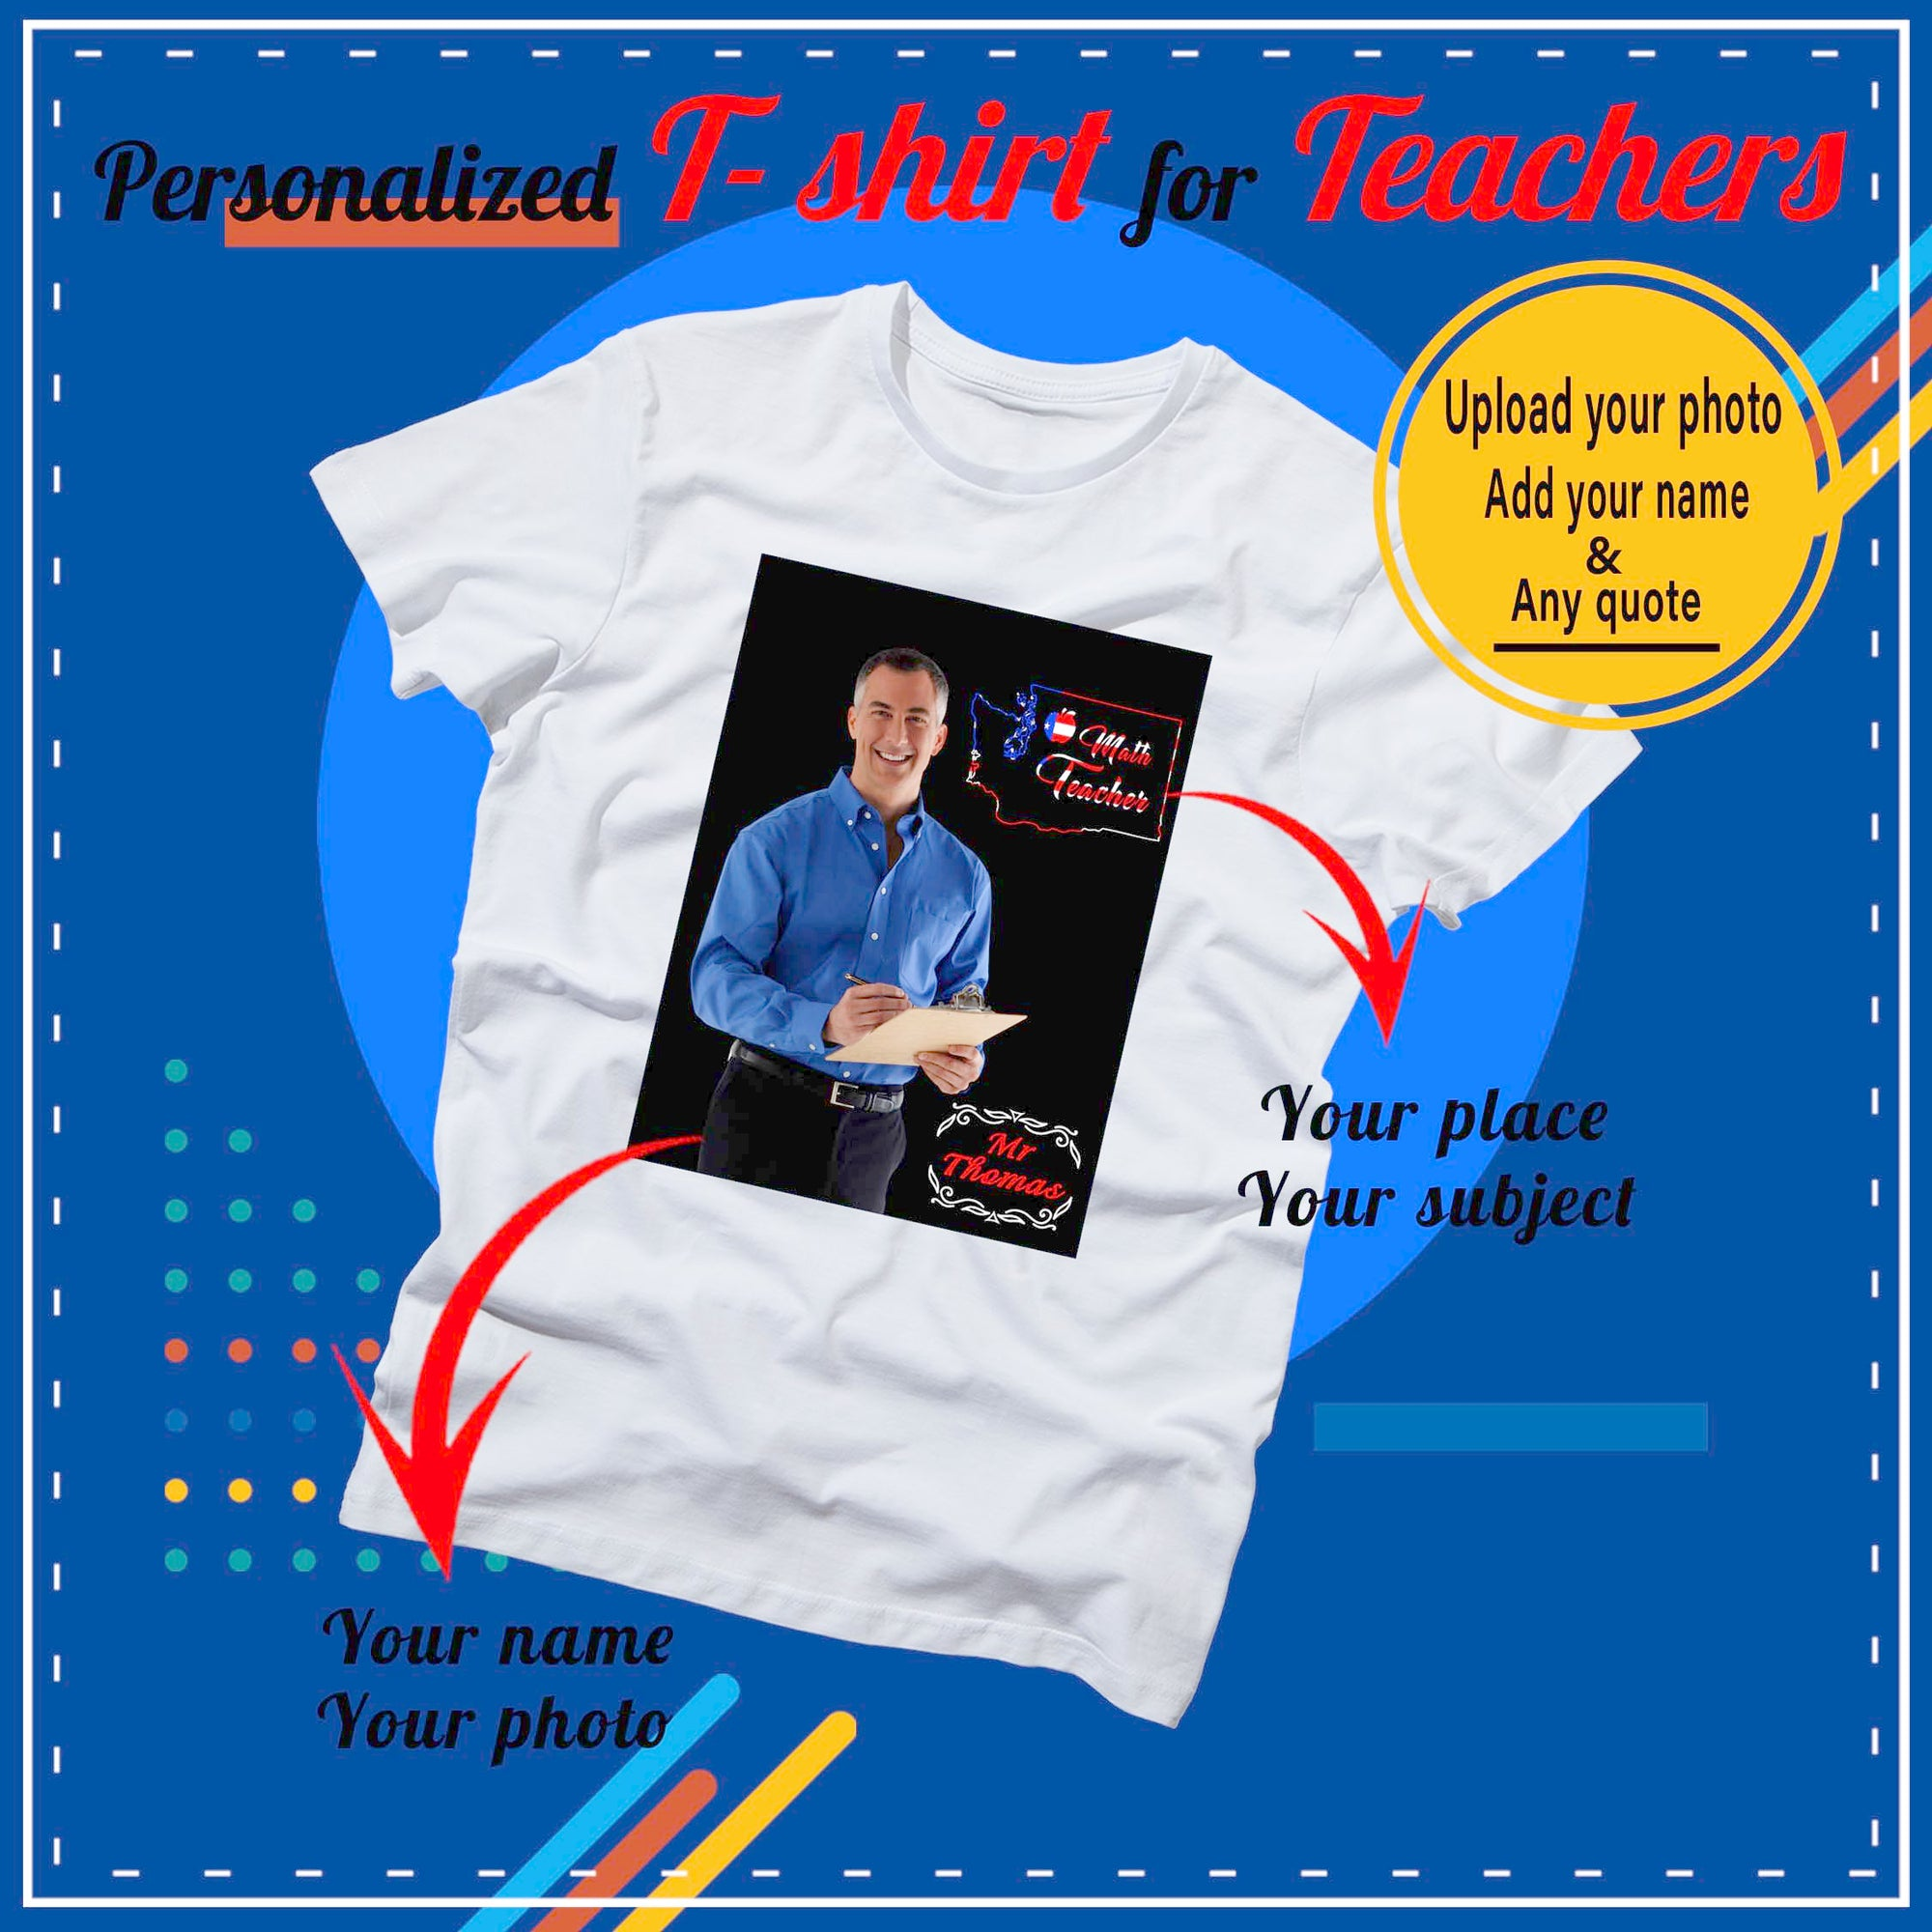 PERSONALIZED T- SHIRT - upload your photo, your outline map & add your name